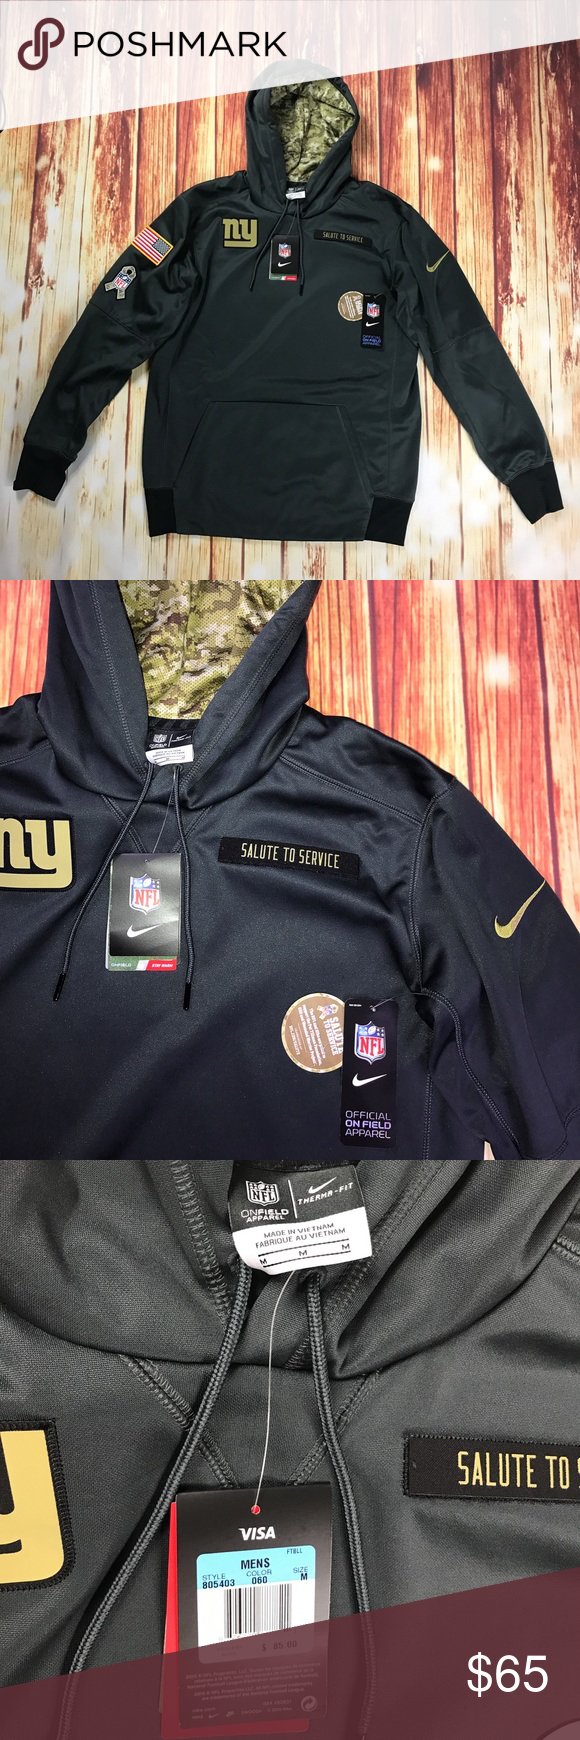 best sneakers d546b fbbe3 Nike New York Giants NFL Salute To Service Hoodie This Is a ...